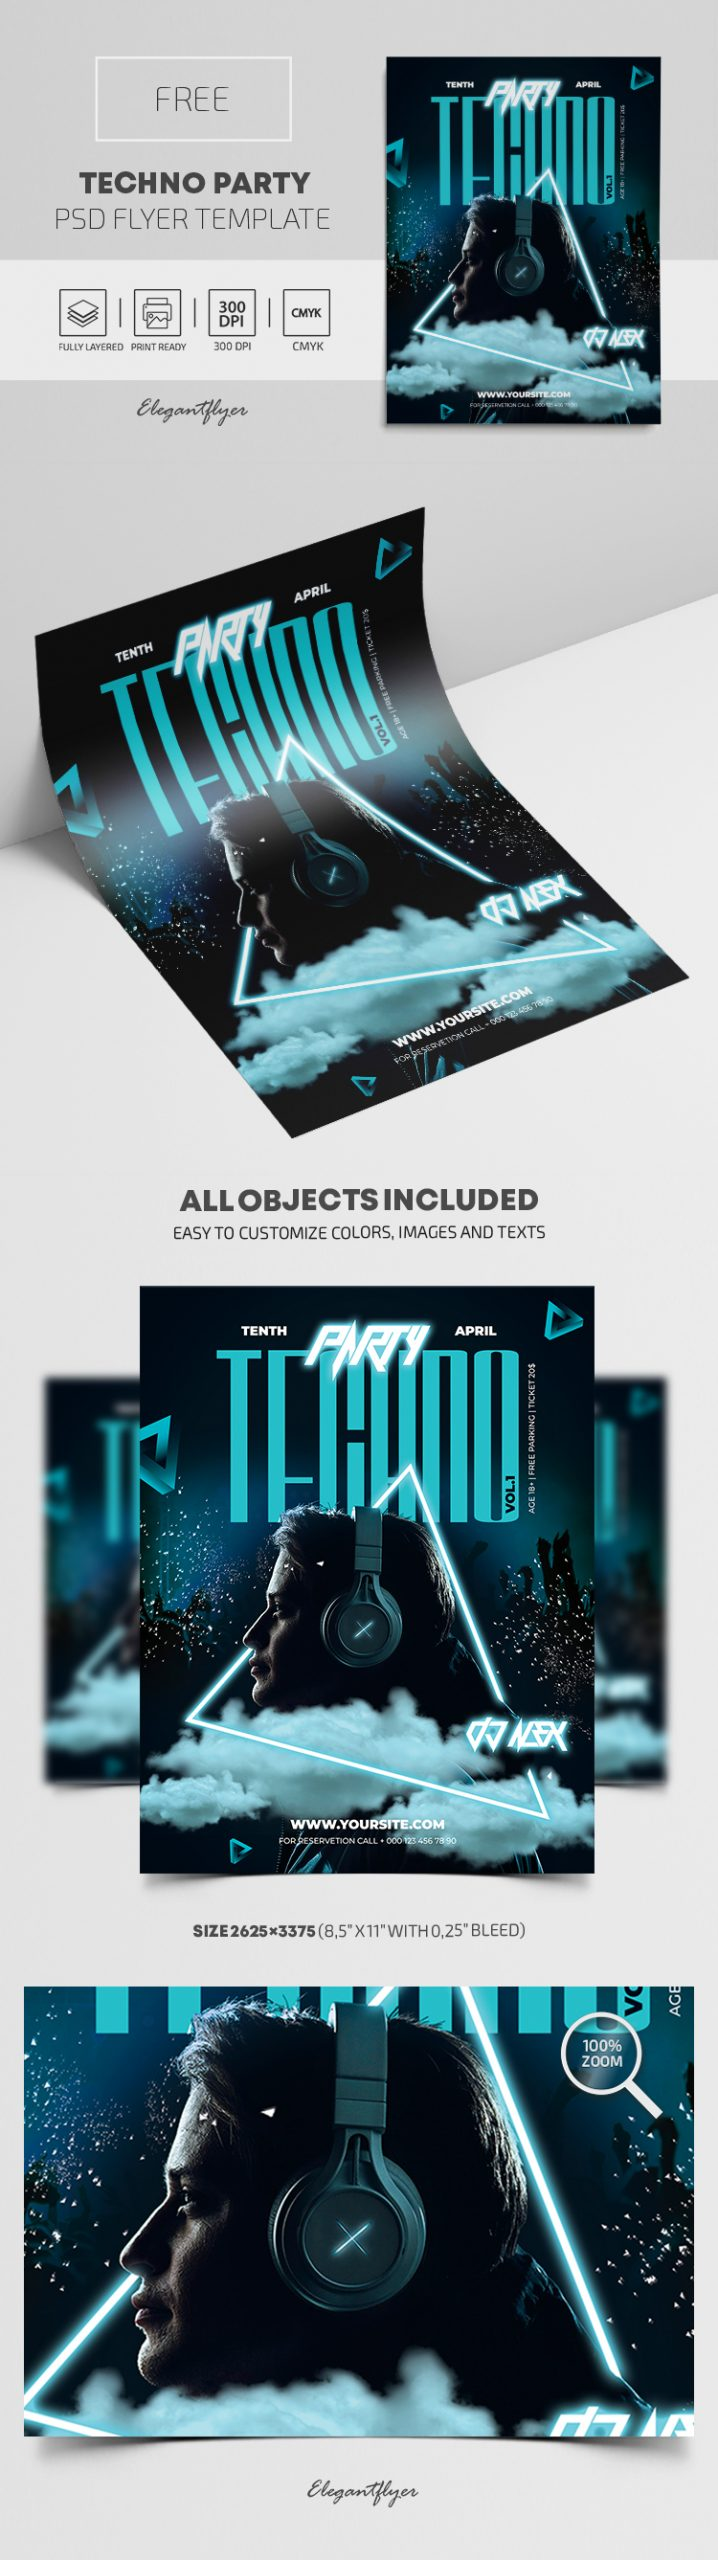 Techno Party – Free PSD Flyer Template